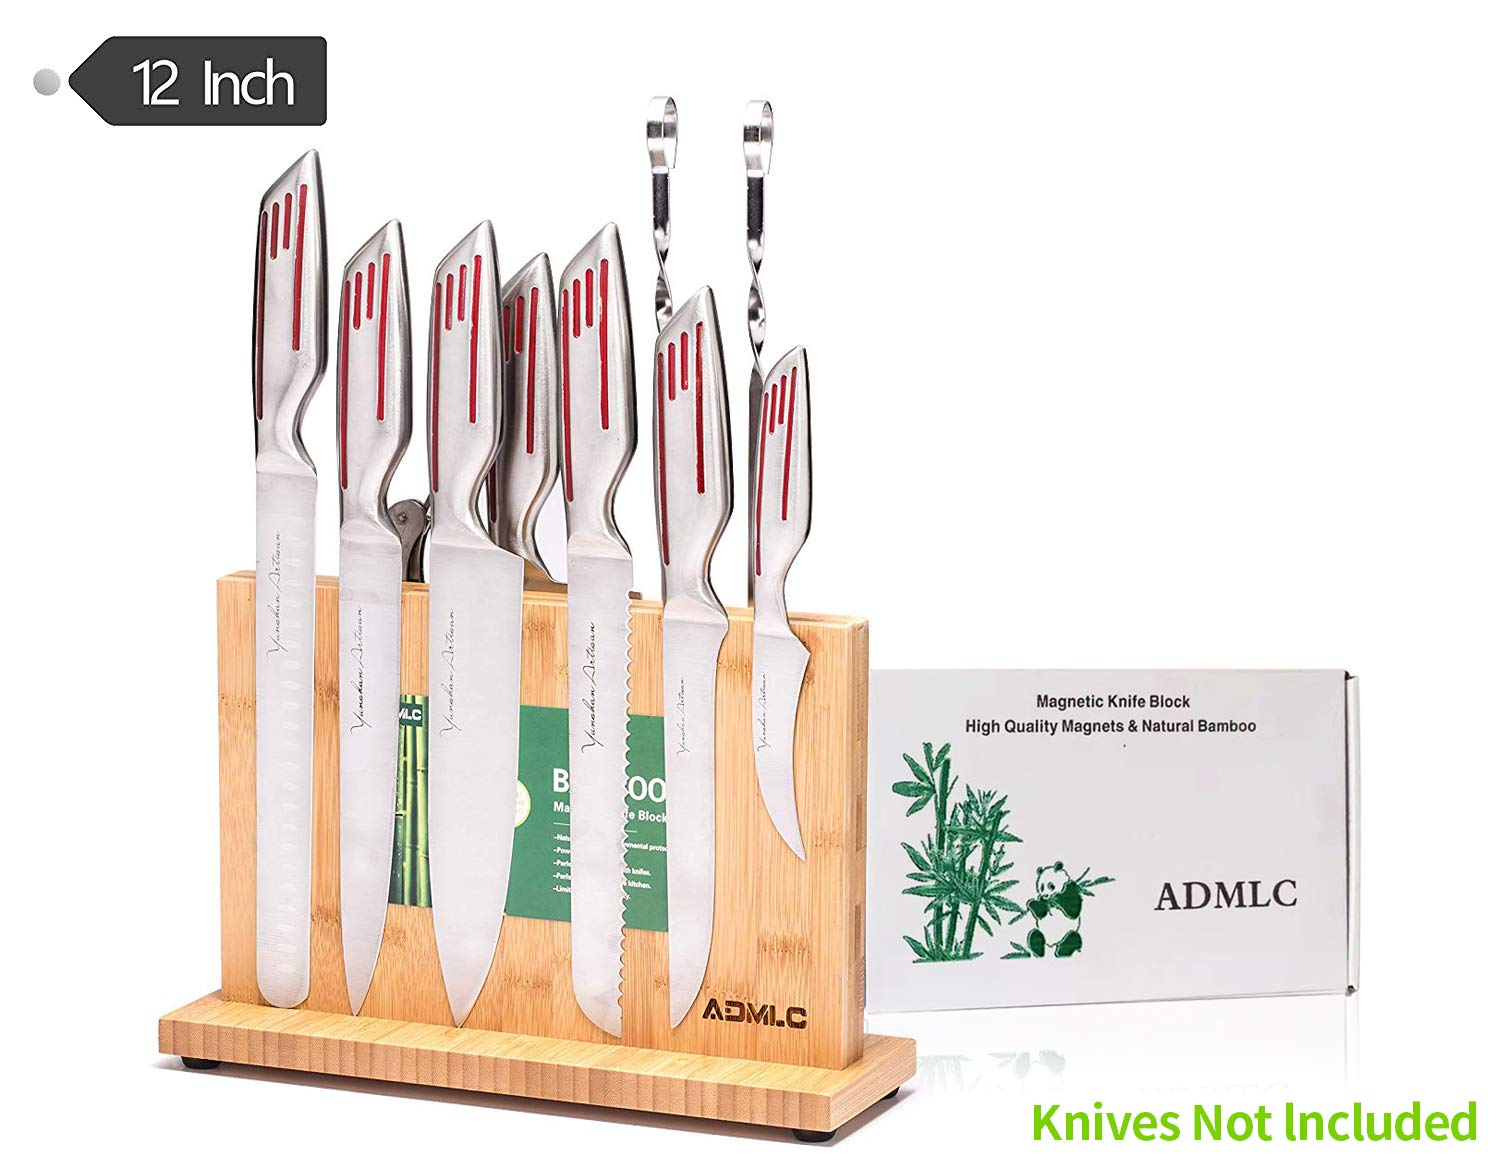 Magnetic Knife Block(Natural Bamboo),Knife Holder,Knife Organizer Block,Knife Dock,Cutlery Display Stand and Storage Rack,Kitchen Scissor Holder,Large Capacity,Double Side Strongly Magnetic (12inch) by ADMLC